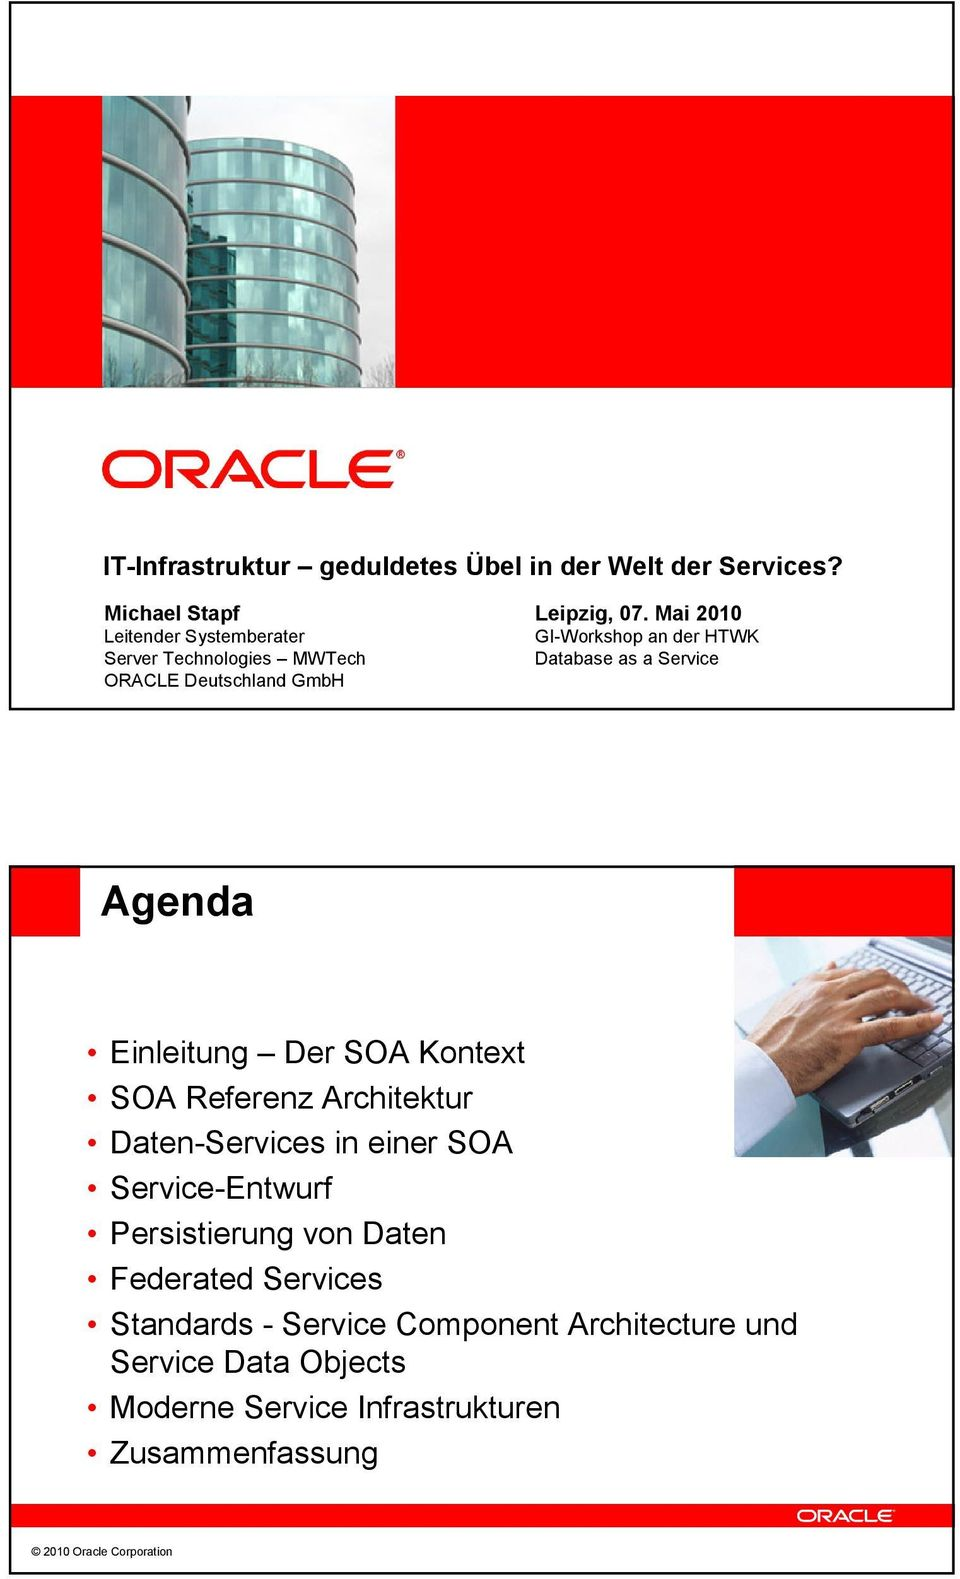 Mai 200 GI-Workshop an der HTWK Database as a Service Agenda Einleitung Der SOA Kontext SOA Referenz Architektur Daten-Services